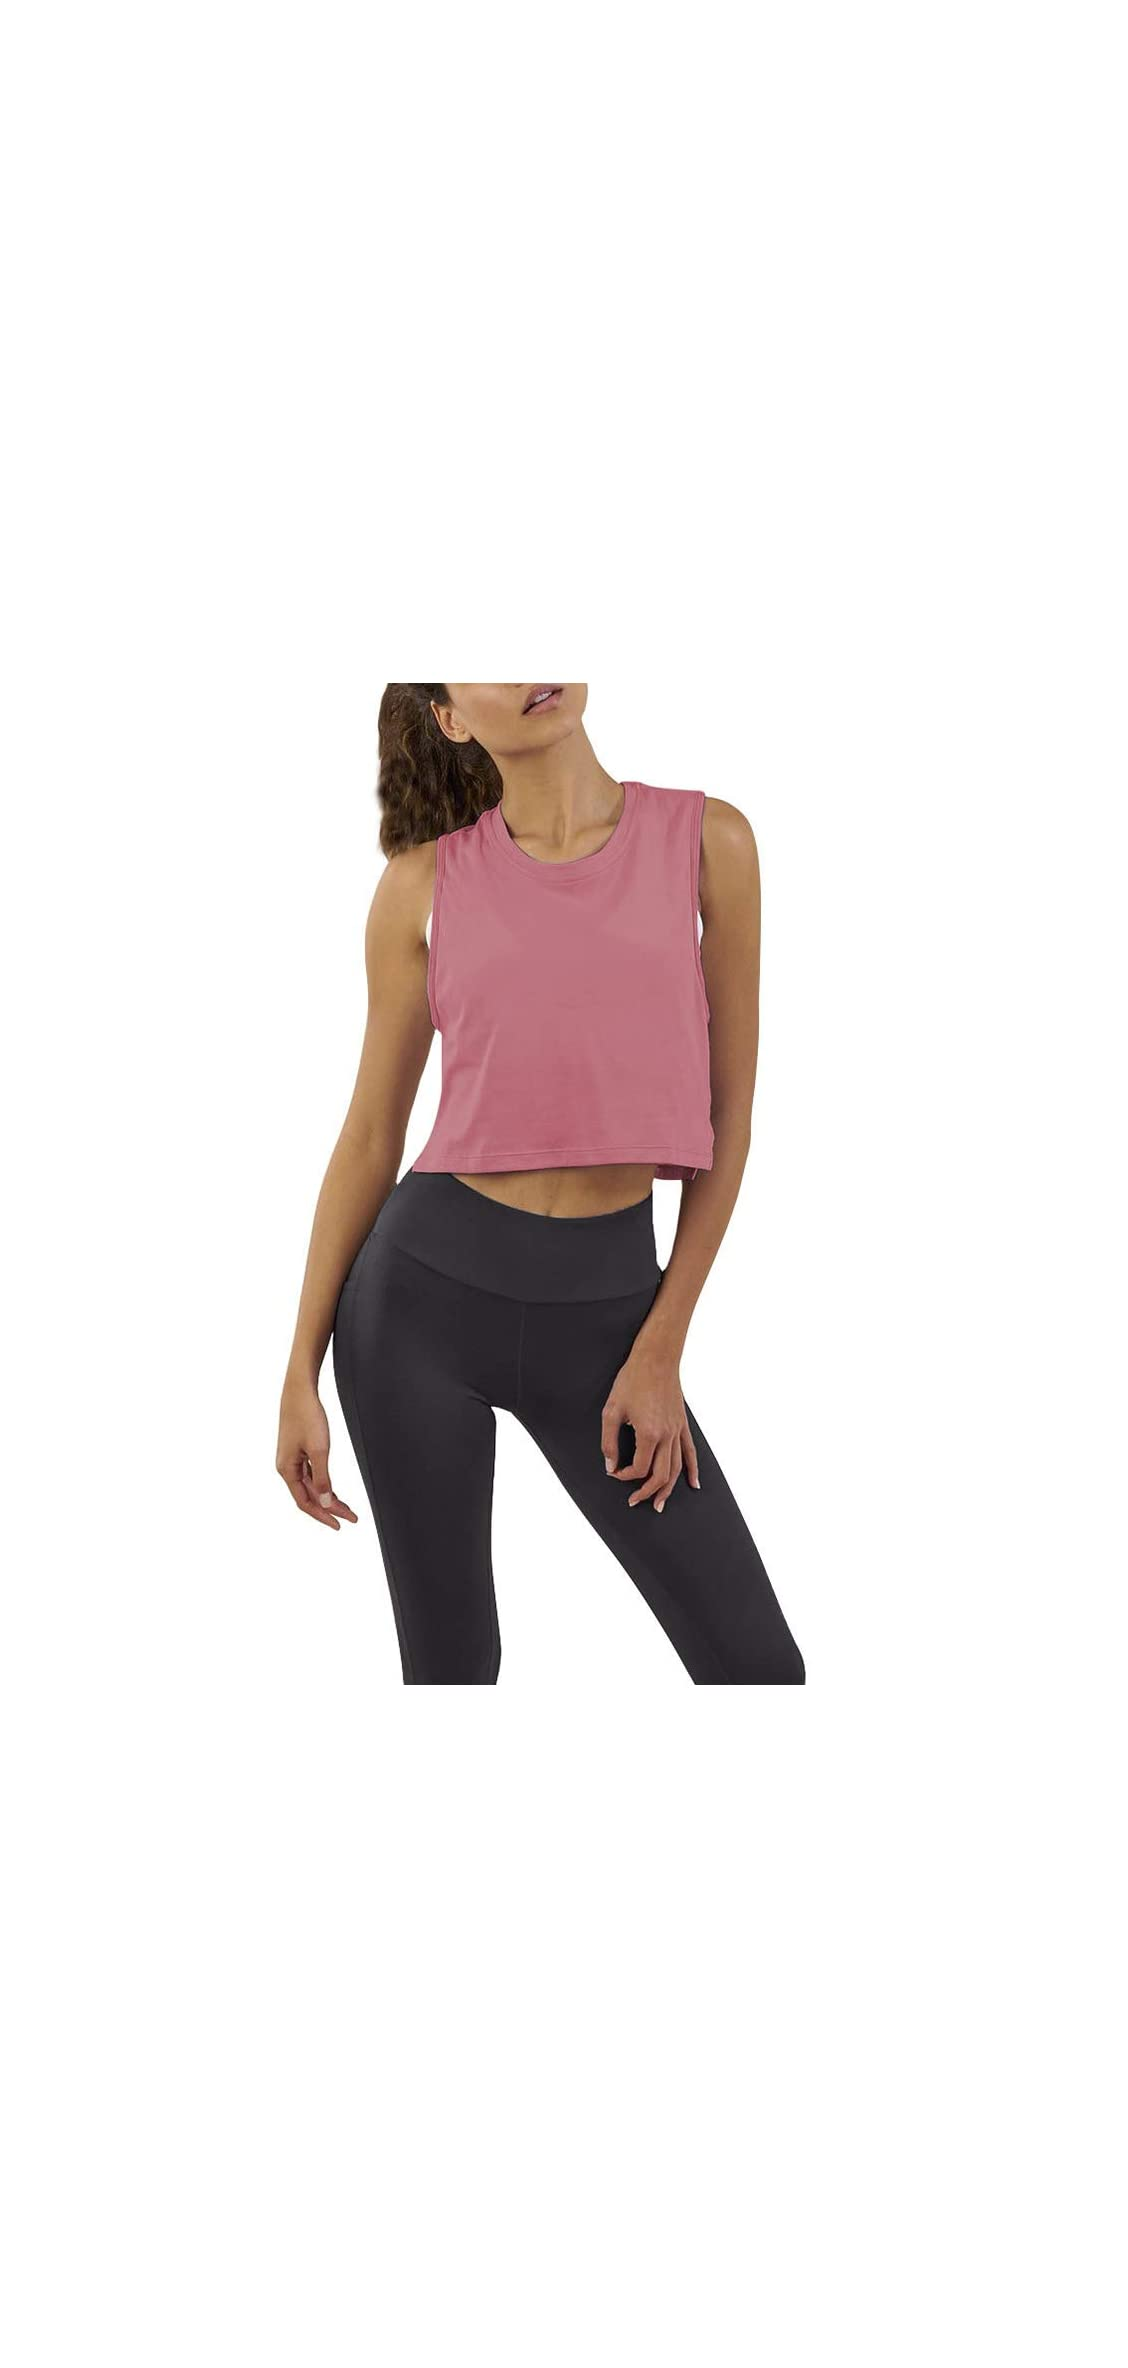 Women's Loose Flowy Mesh Workout Athletic Gym Crop Top Tee